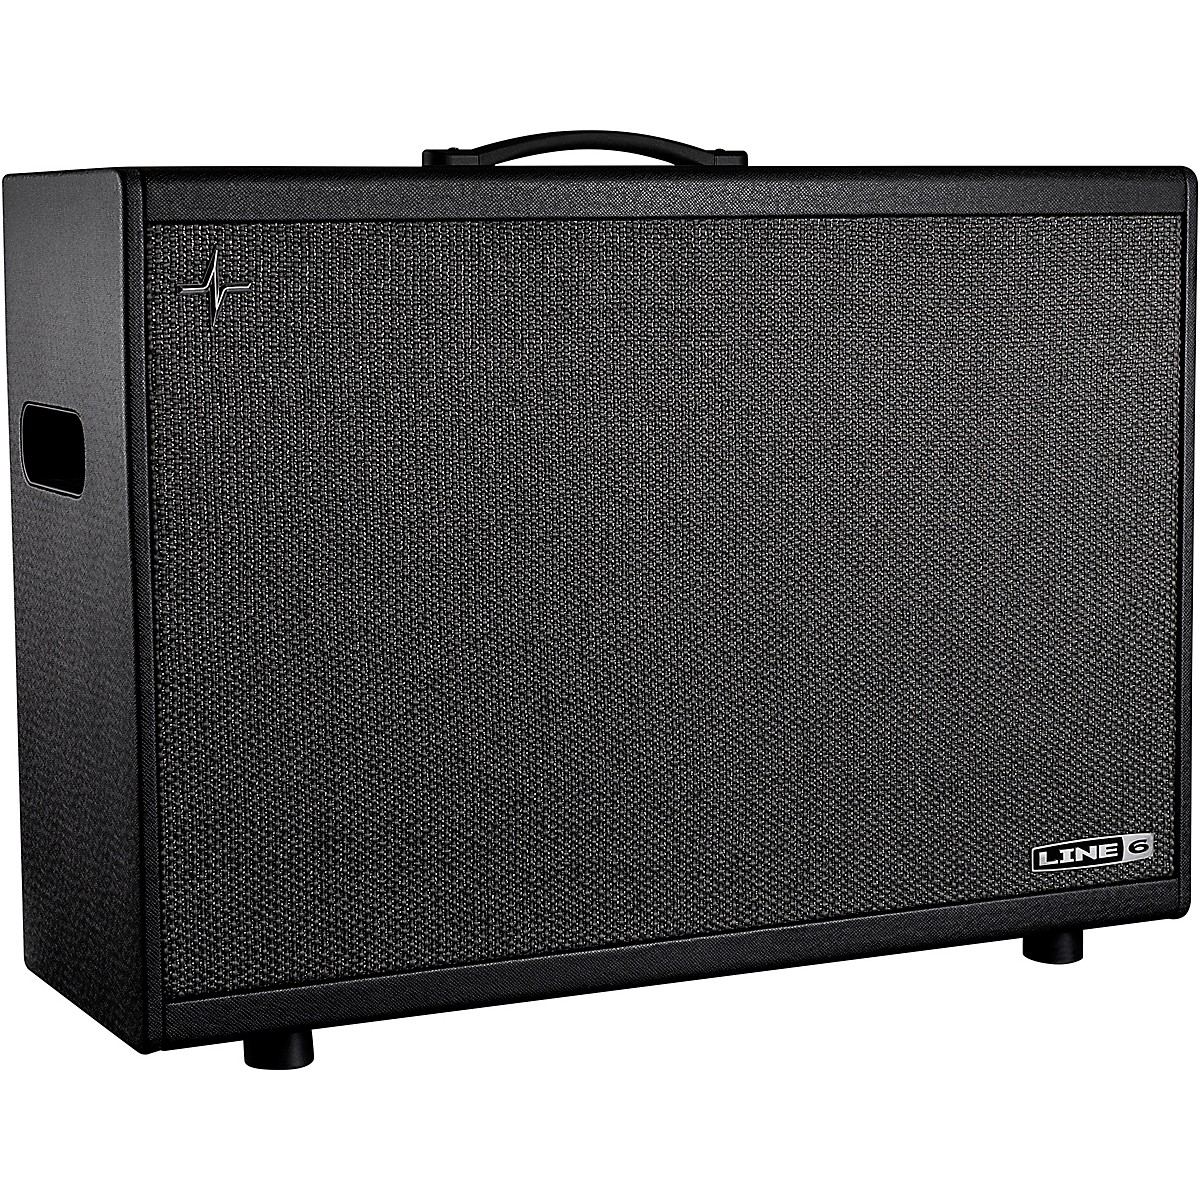 Line 6 Powercab 212 Plus 500W 2x12 Powered Stereo Guitar Speaker Cab